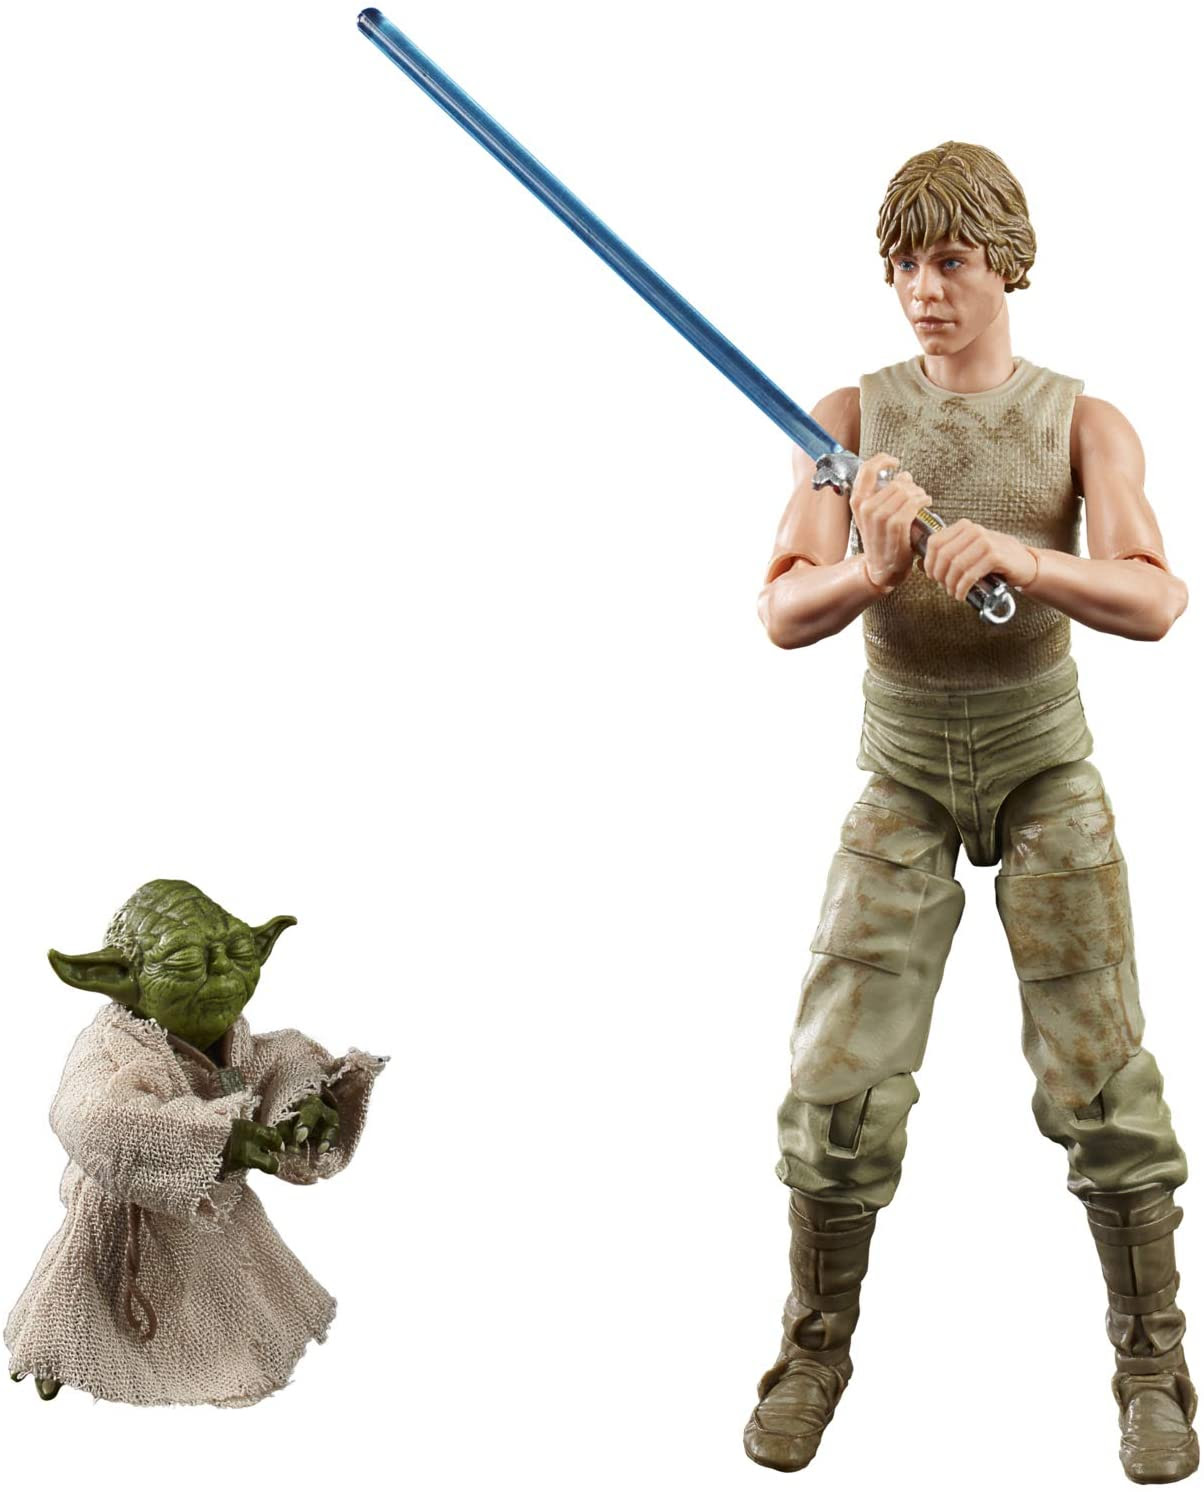 Image of Star Wars The Black Series Luke Skywalker and Yoda (Jedi Training) 6-Inch-Scale The Empire Strikes Back 40th Anniversary Figures